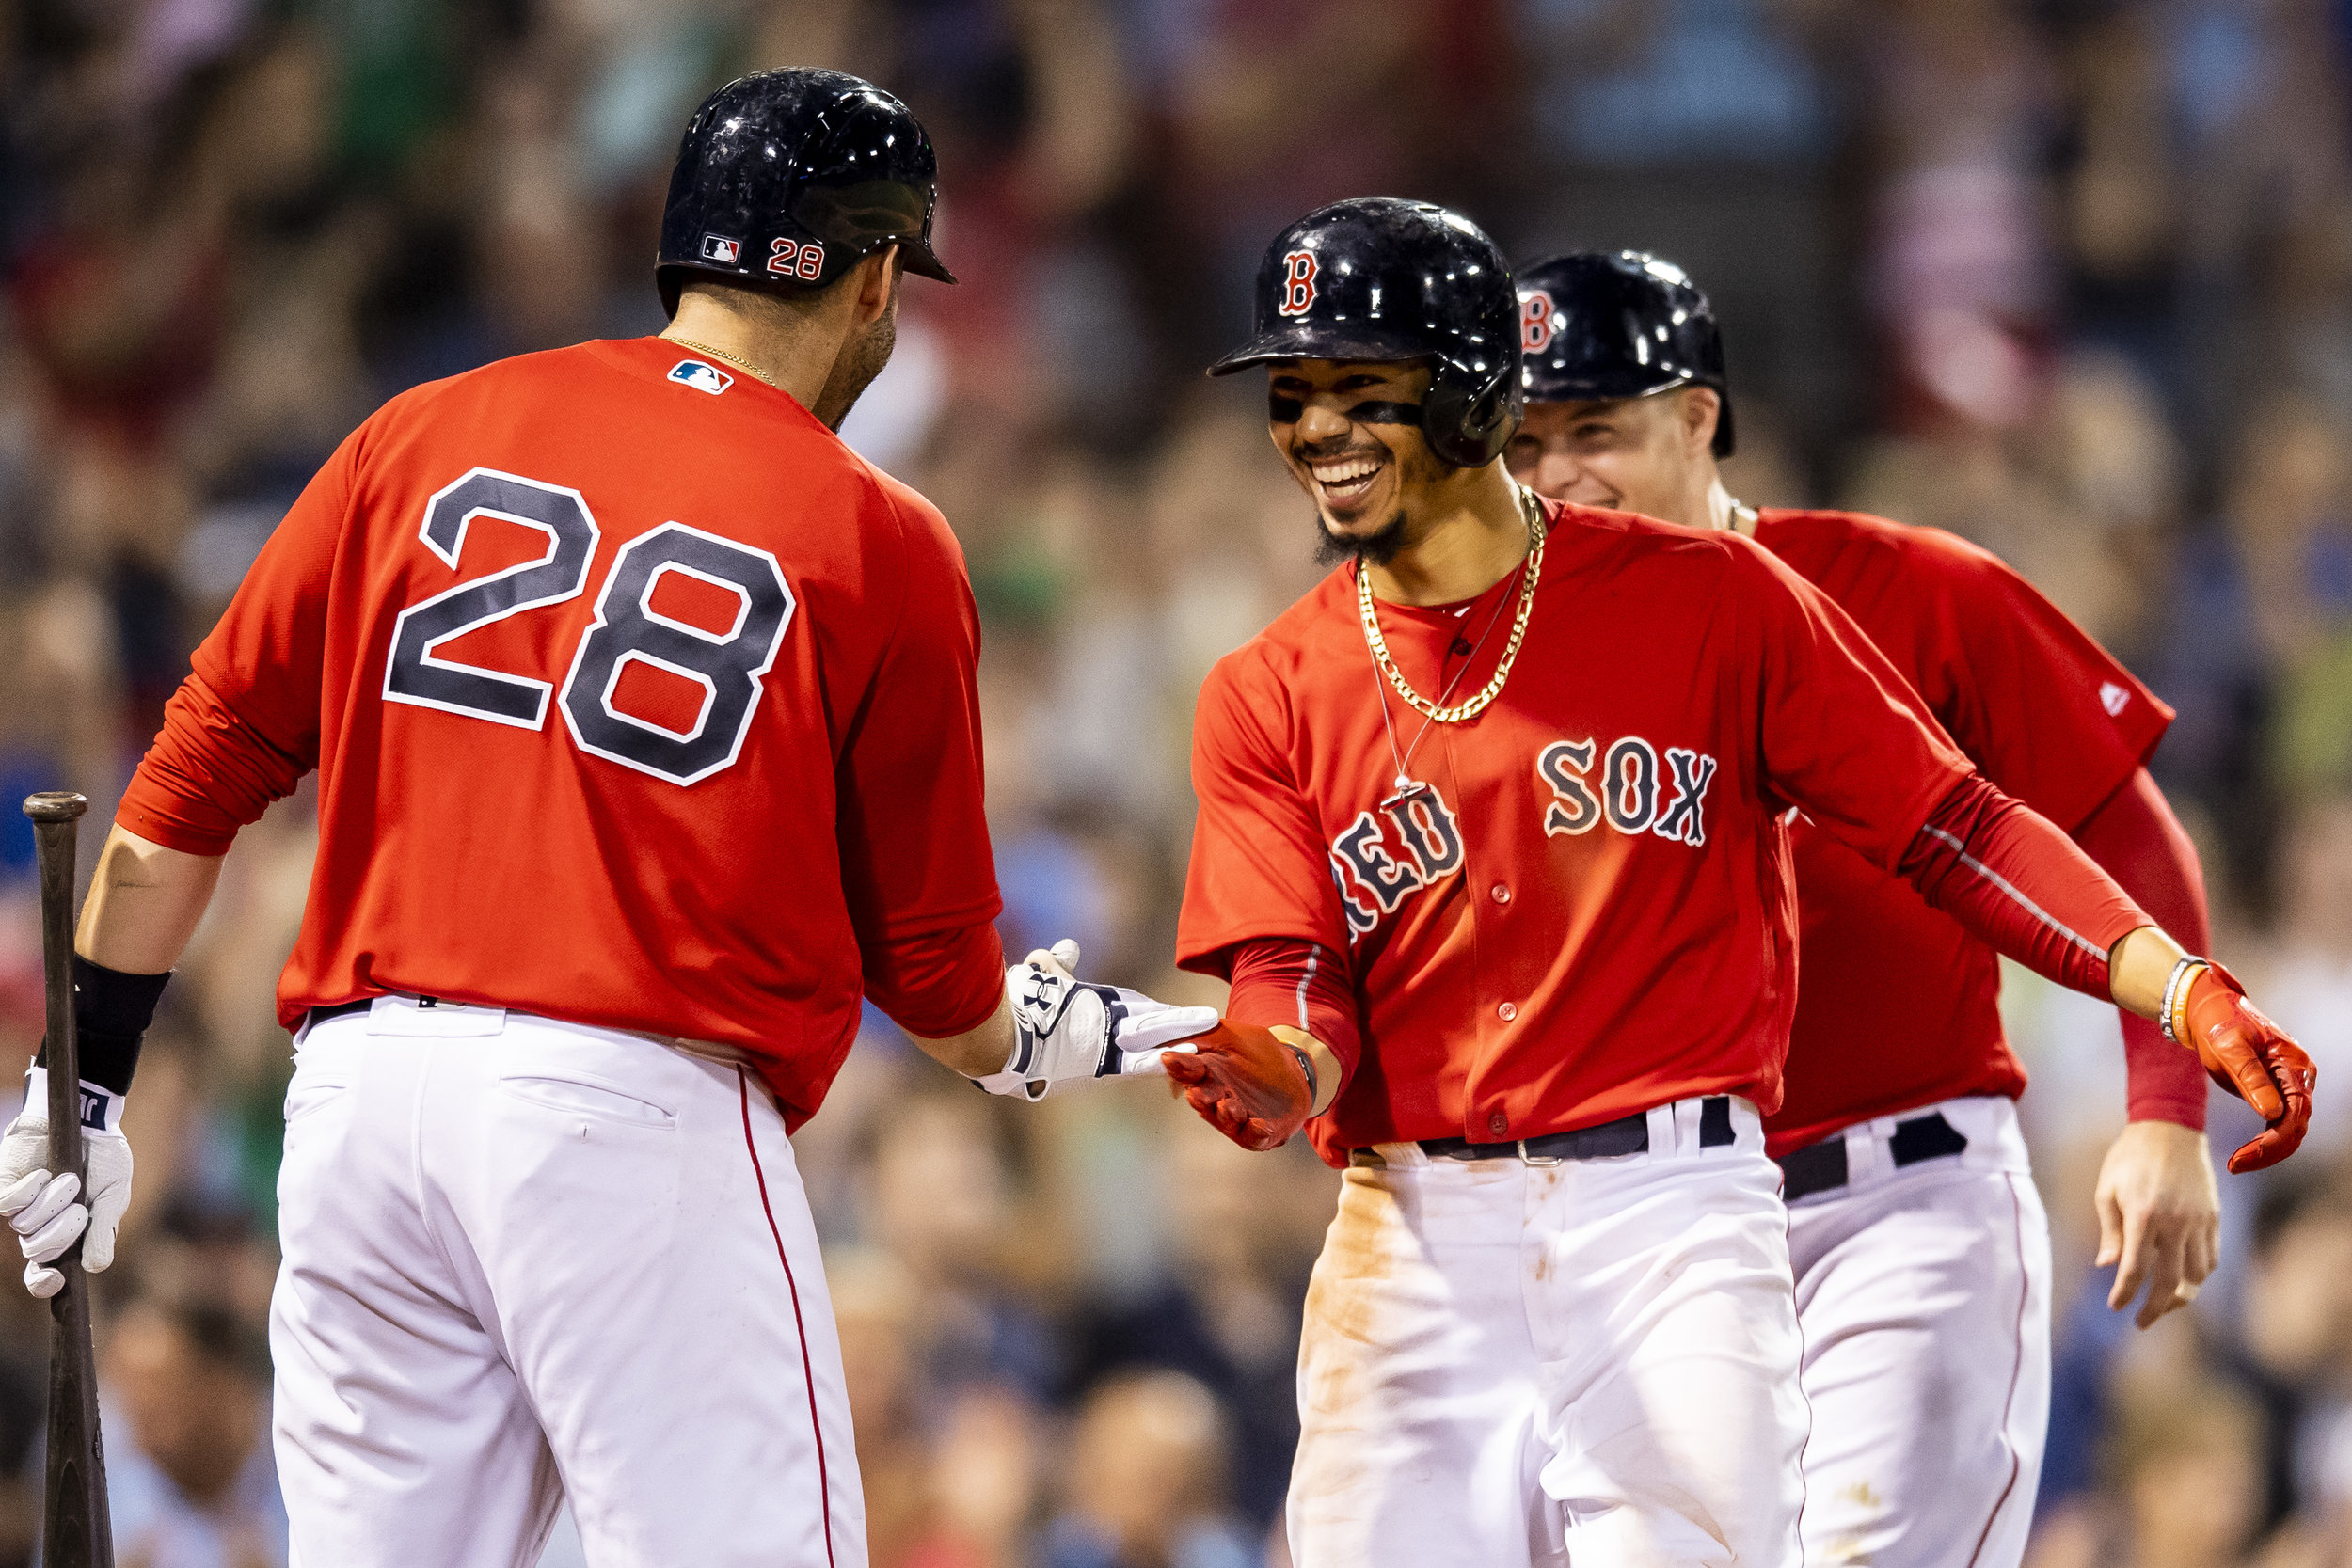 May 25, 2018, Boston, MA: Boston Red Sox outfielder Mookie Betts high-fives Boston Red Sox designated hitter J.D. Martinez after hitting a home run as the Boston Red Sox face the Atlanta Braves at Fenway Park in Boston, Massachusetts on Friday, May 25, 2018. (Photo by Matthew Thomas/Boston Red Sox)